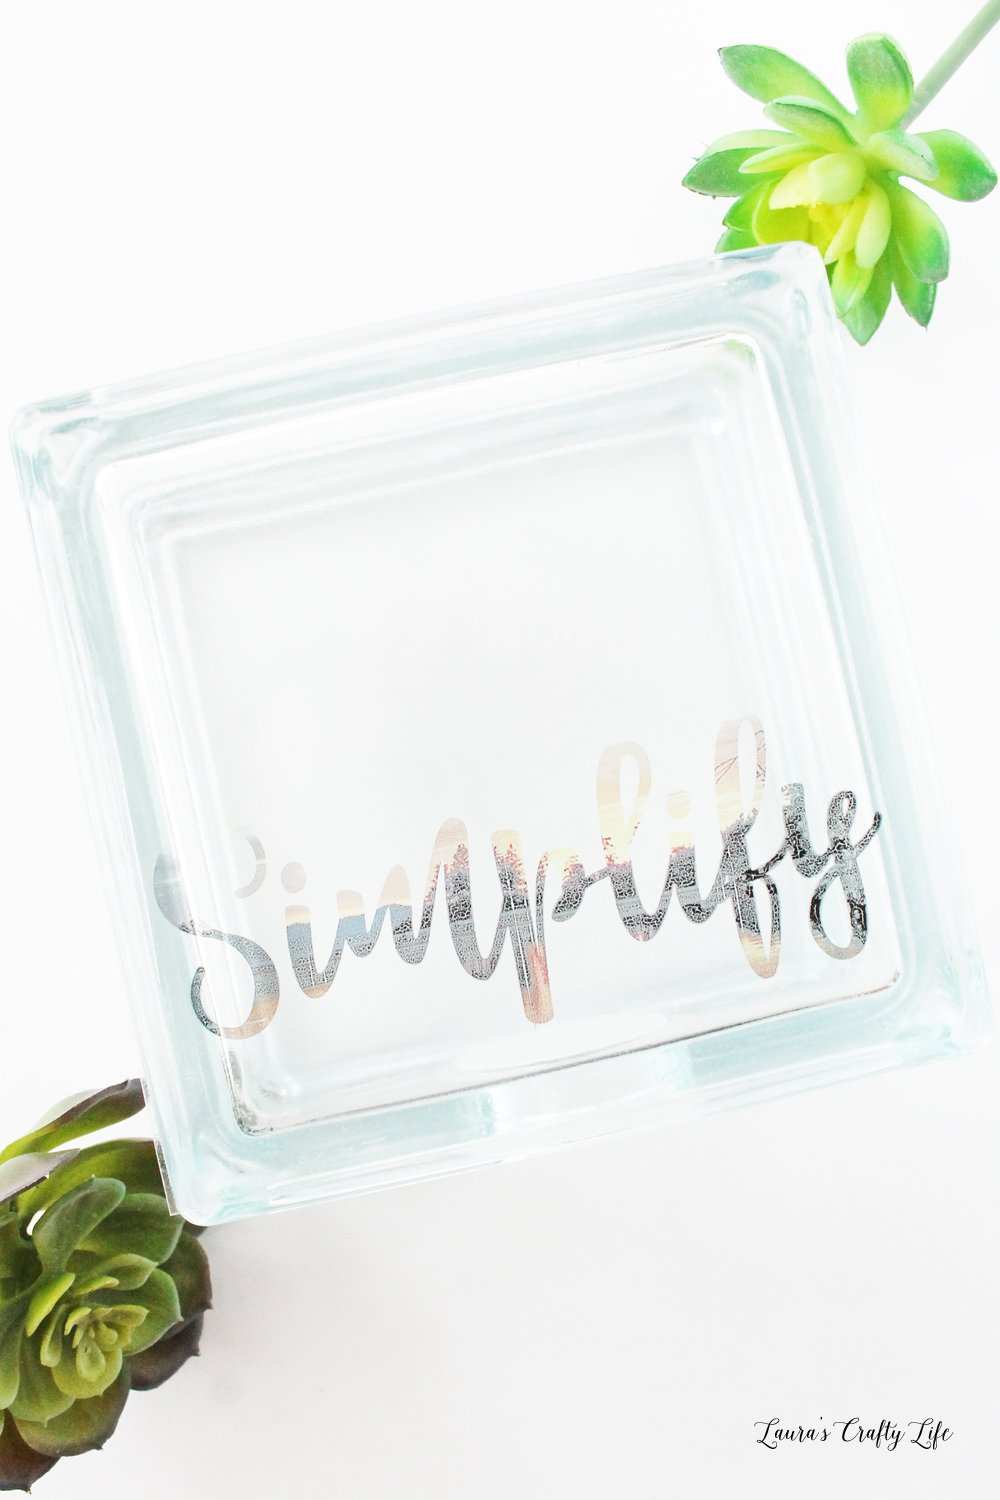 Inspirational Glass Photo Block - easy technique to change photo to word using Photoshop Elements 18